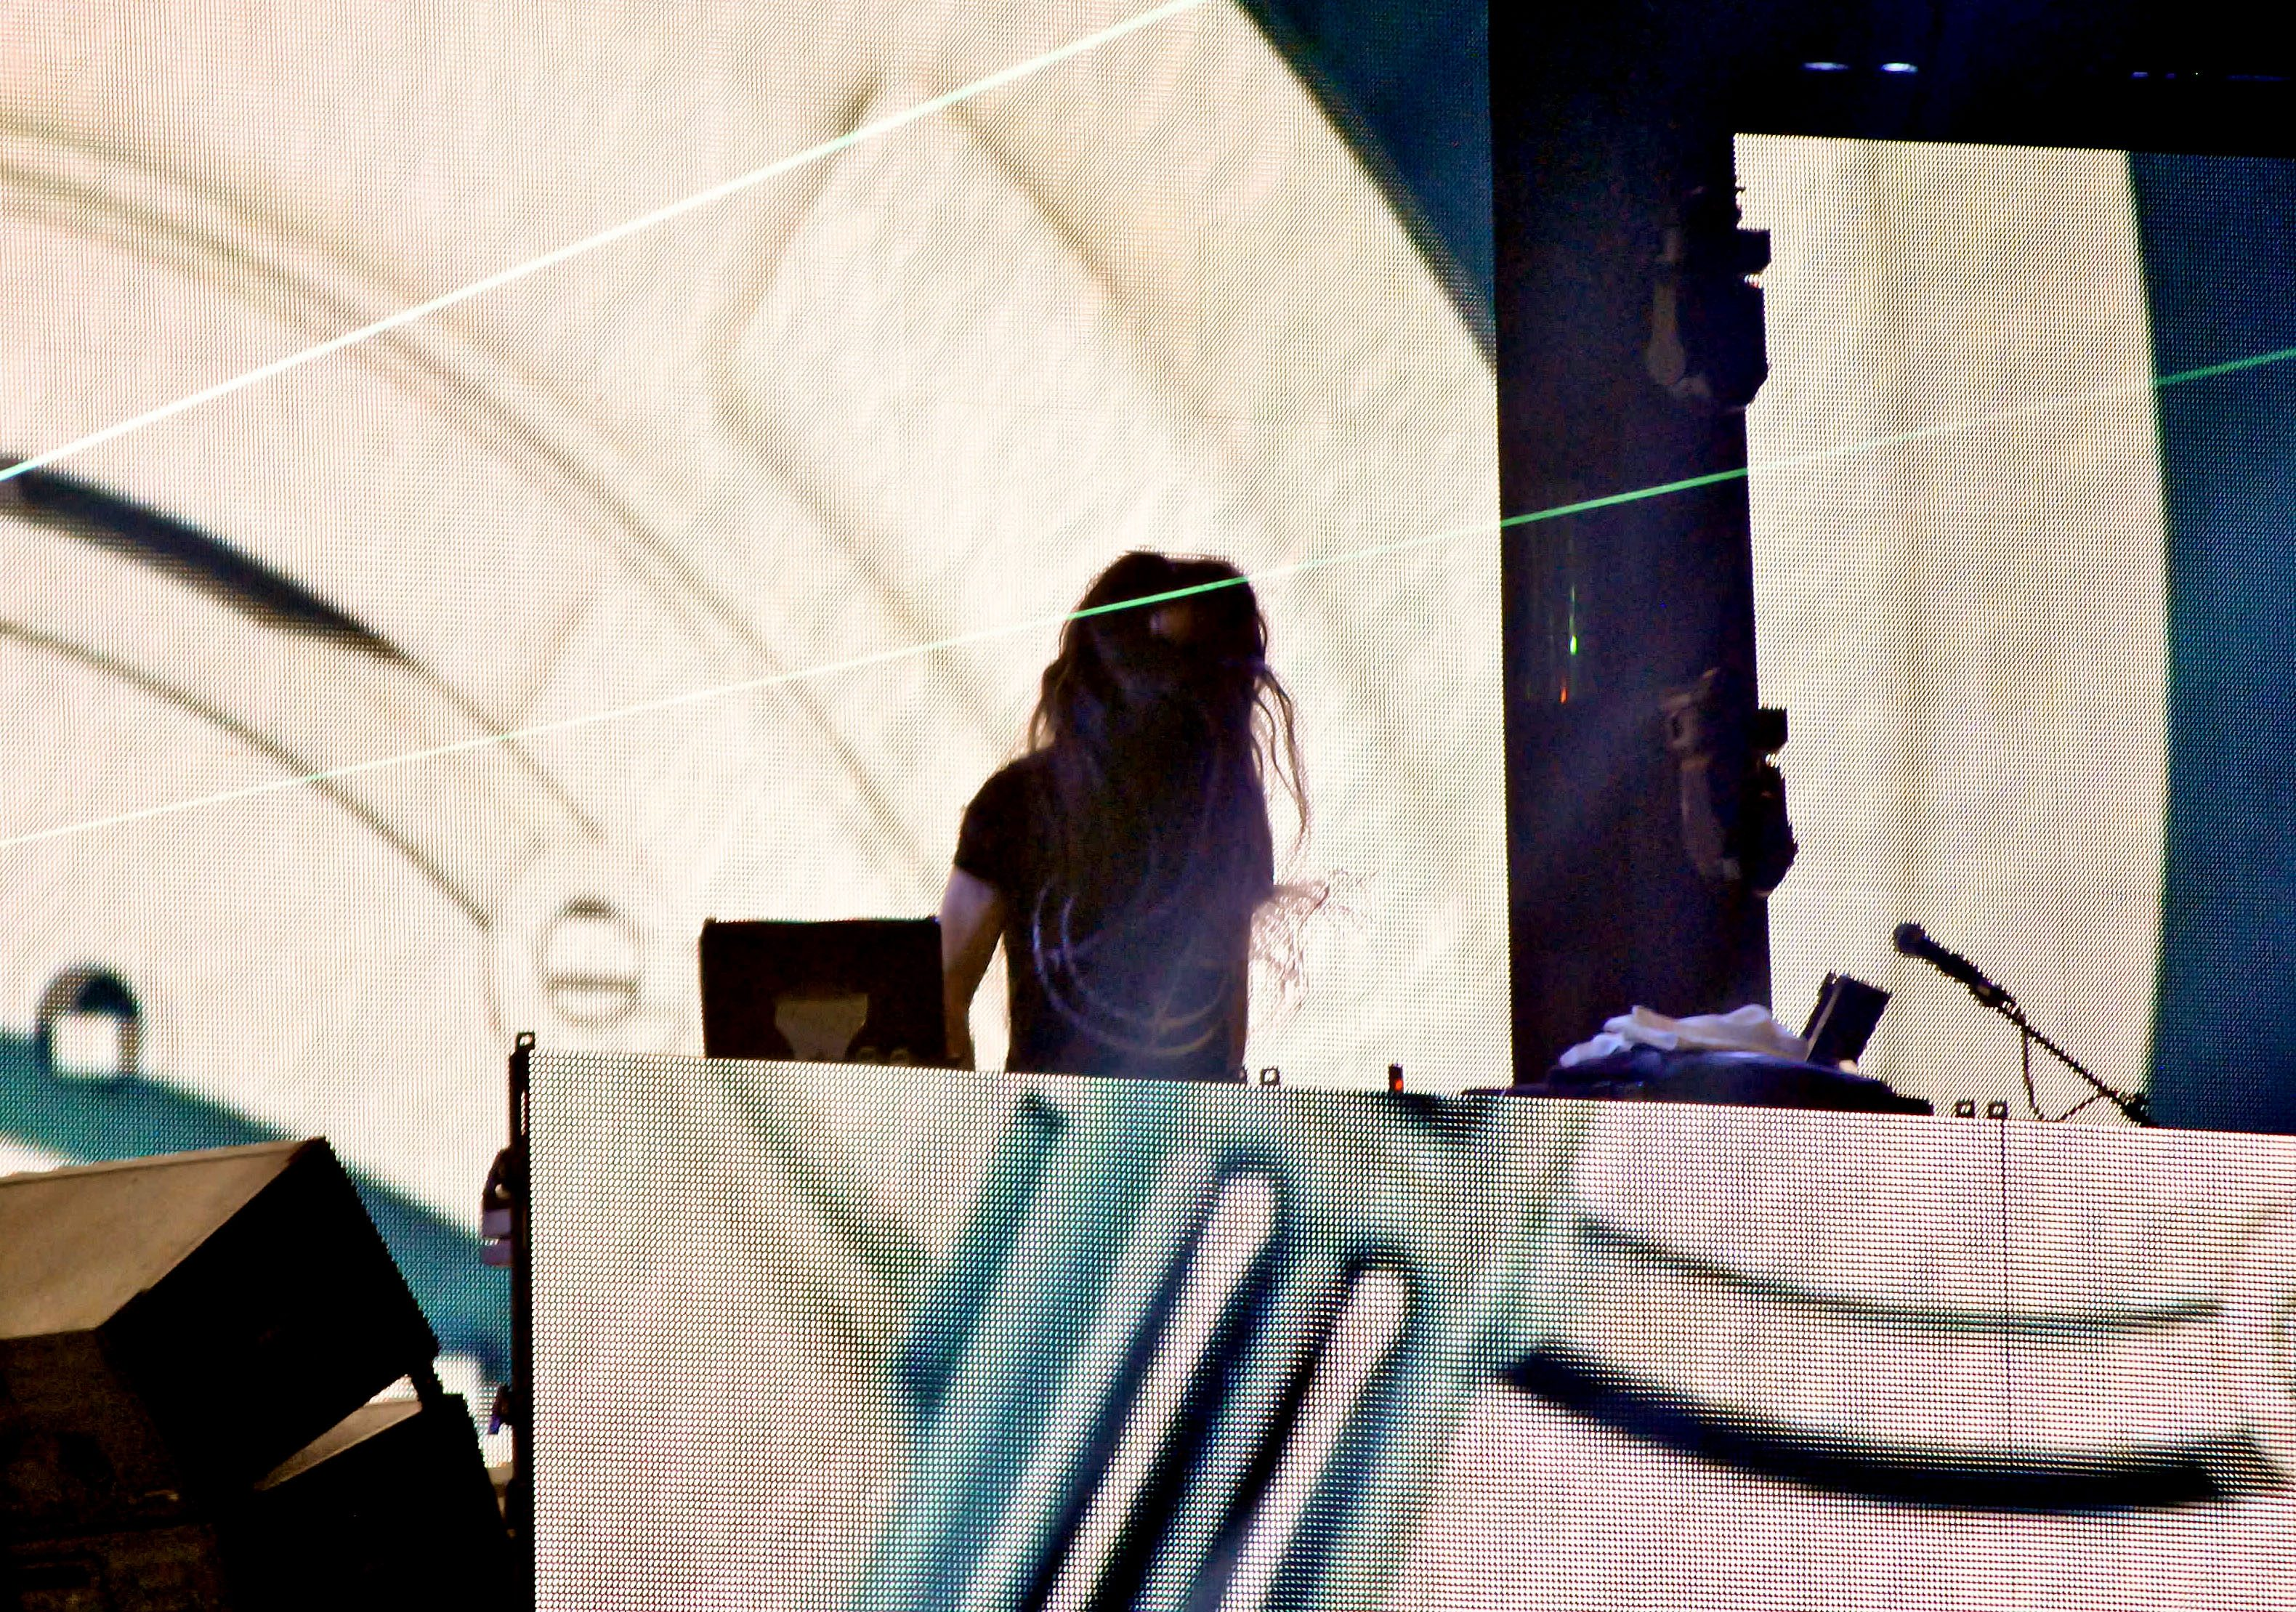 Two Women File Lawsuit Against Bassnectar Alleging Sexual Abuse, Child Pornography and Human Trafficking